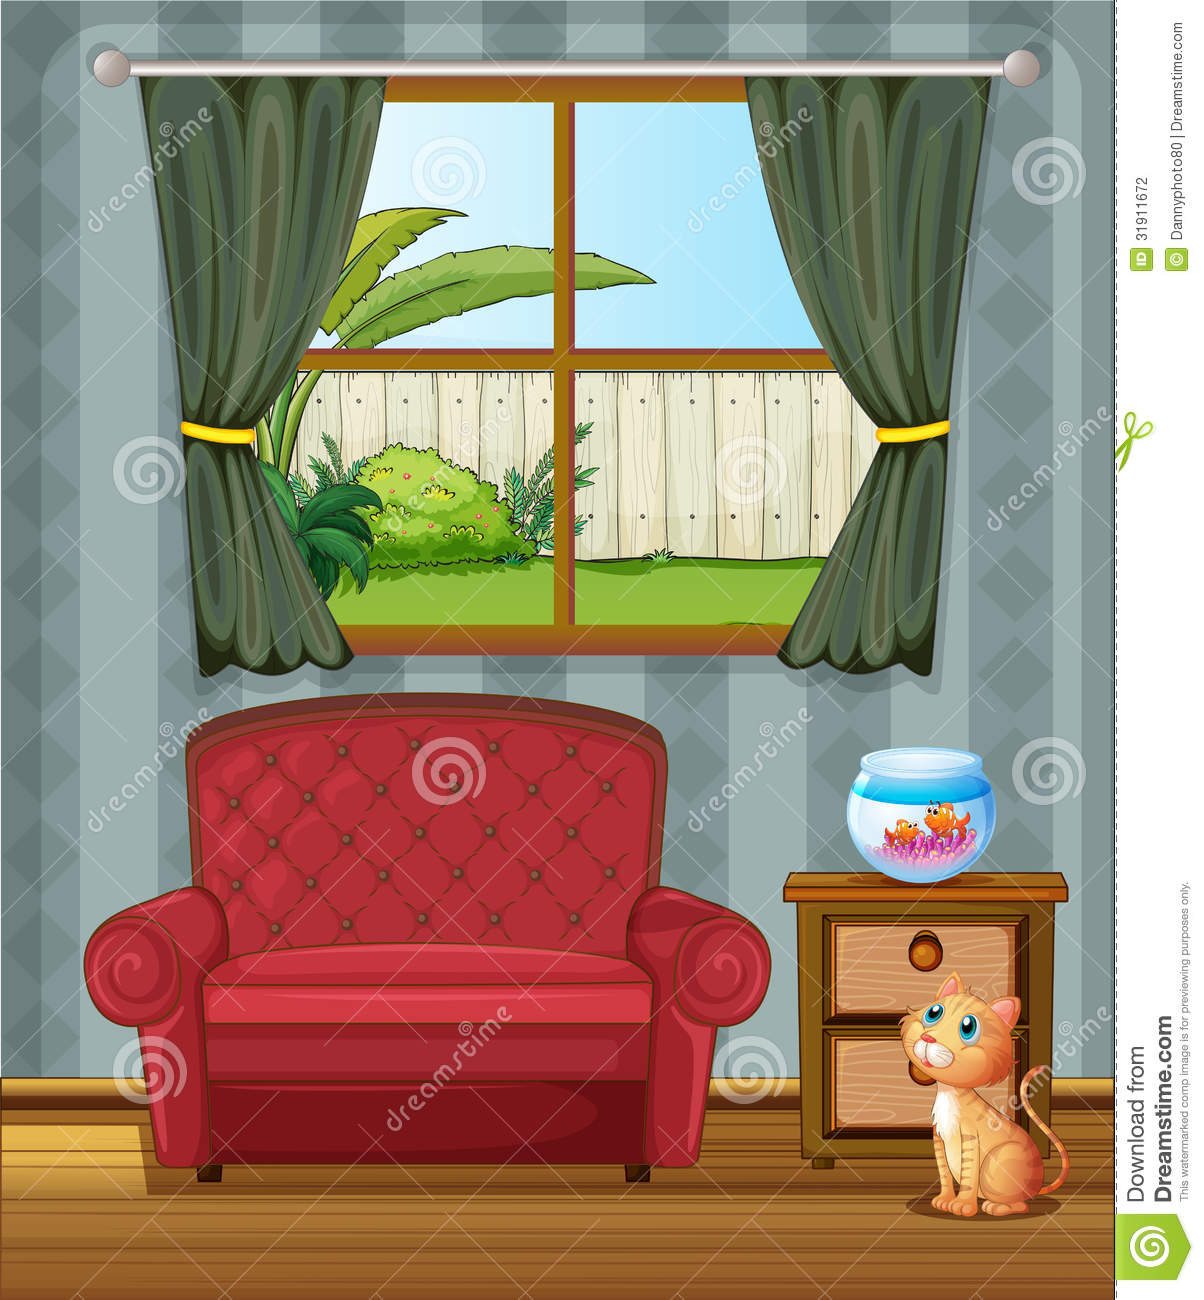 clipart inside house - photo #33